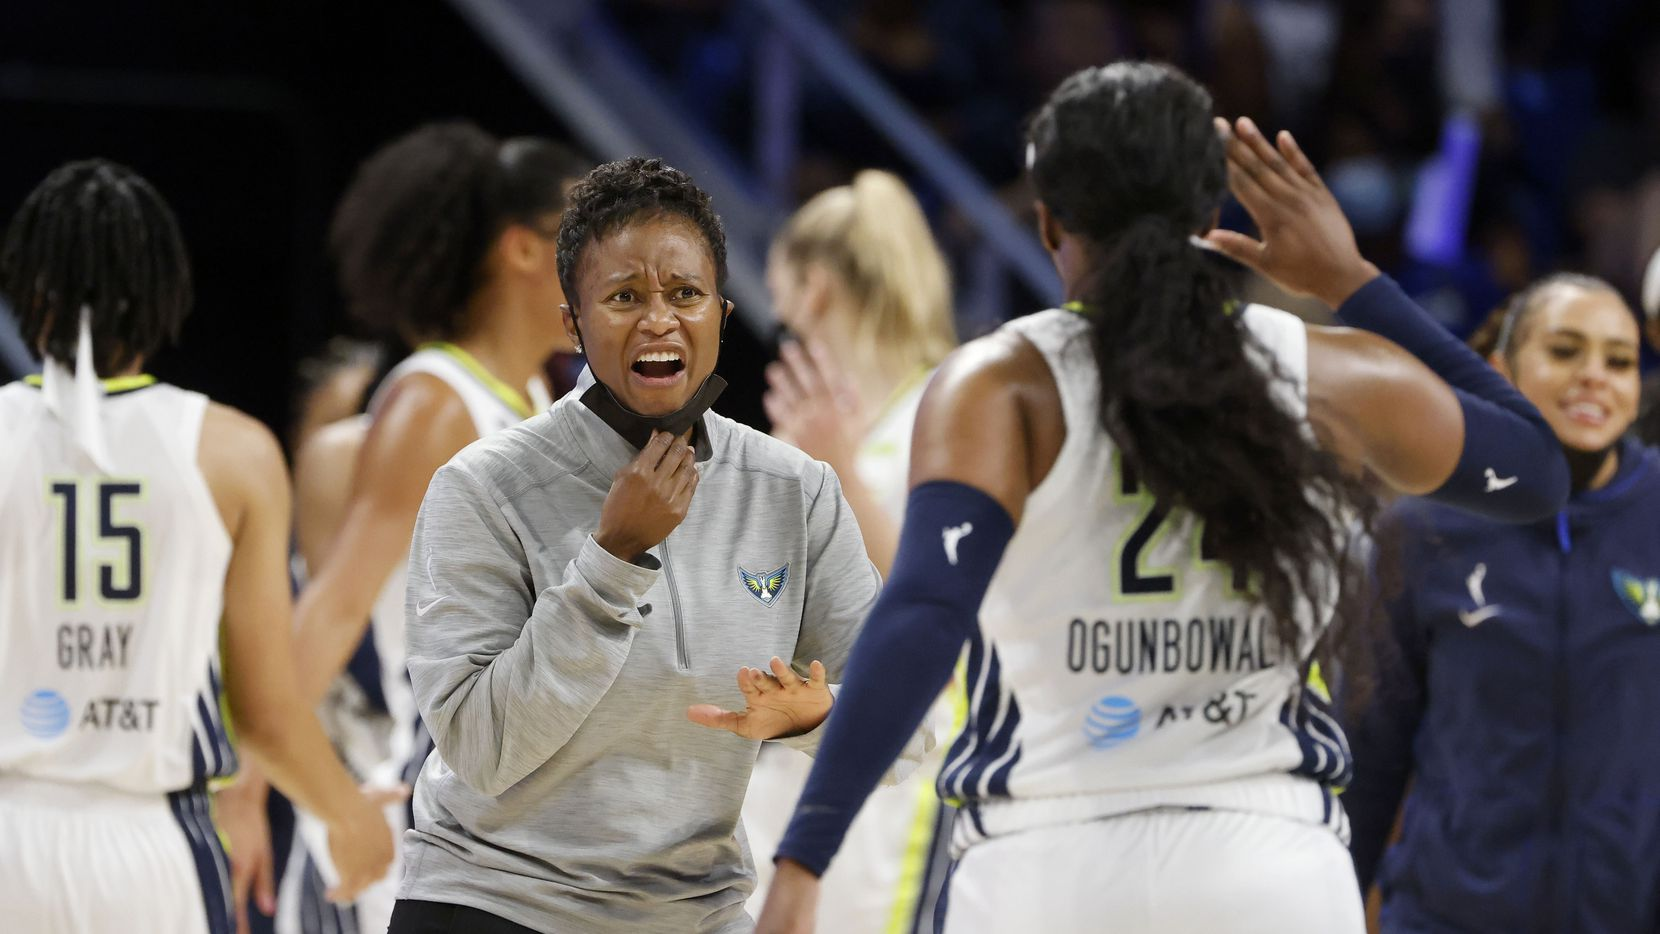 Dallas Wings head coach Vickie Johnson celebrates with guard Arike Ogunbowale (24) as they played the Los Angeles Sparks during the second half of a WNBA basketball game in Arlington, Texas on Sunday, Sept. 19, 2021.